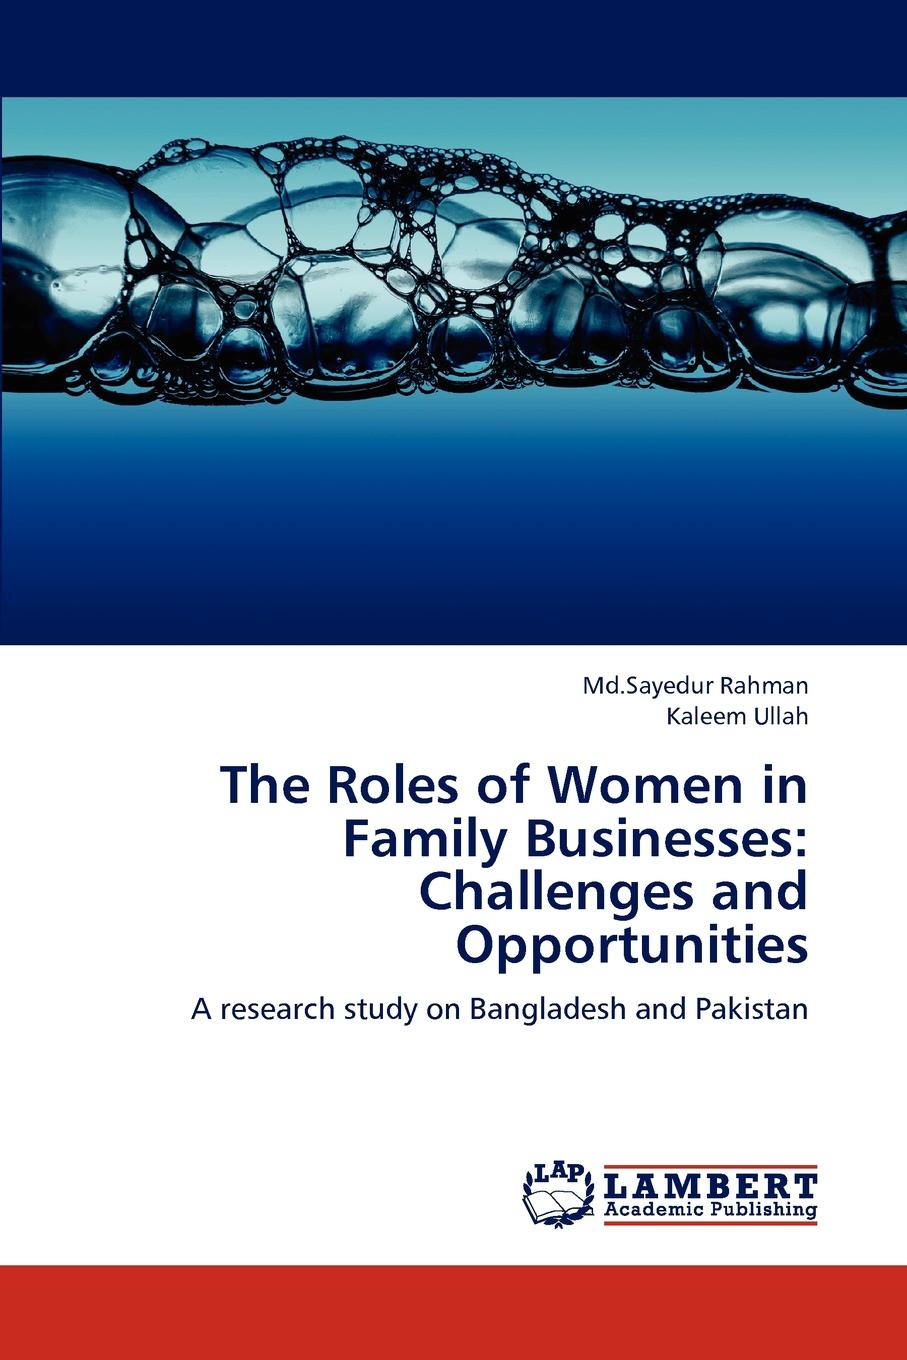 The Roles of Women in Family Businesses. Challenges and Opportunities The Roles of women in family businesses and challenges...